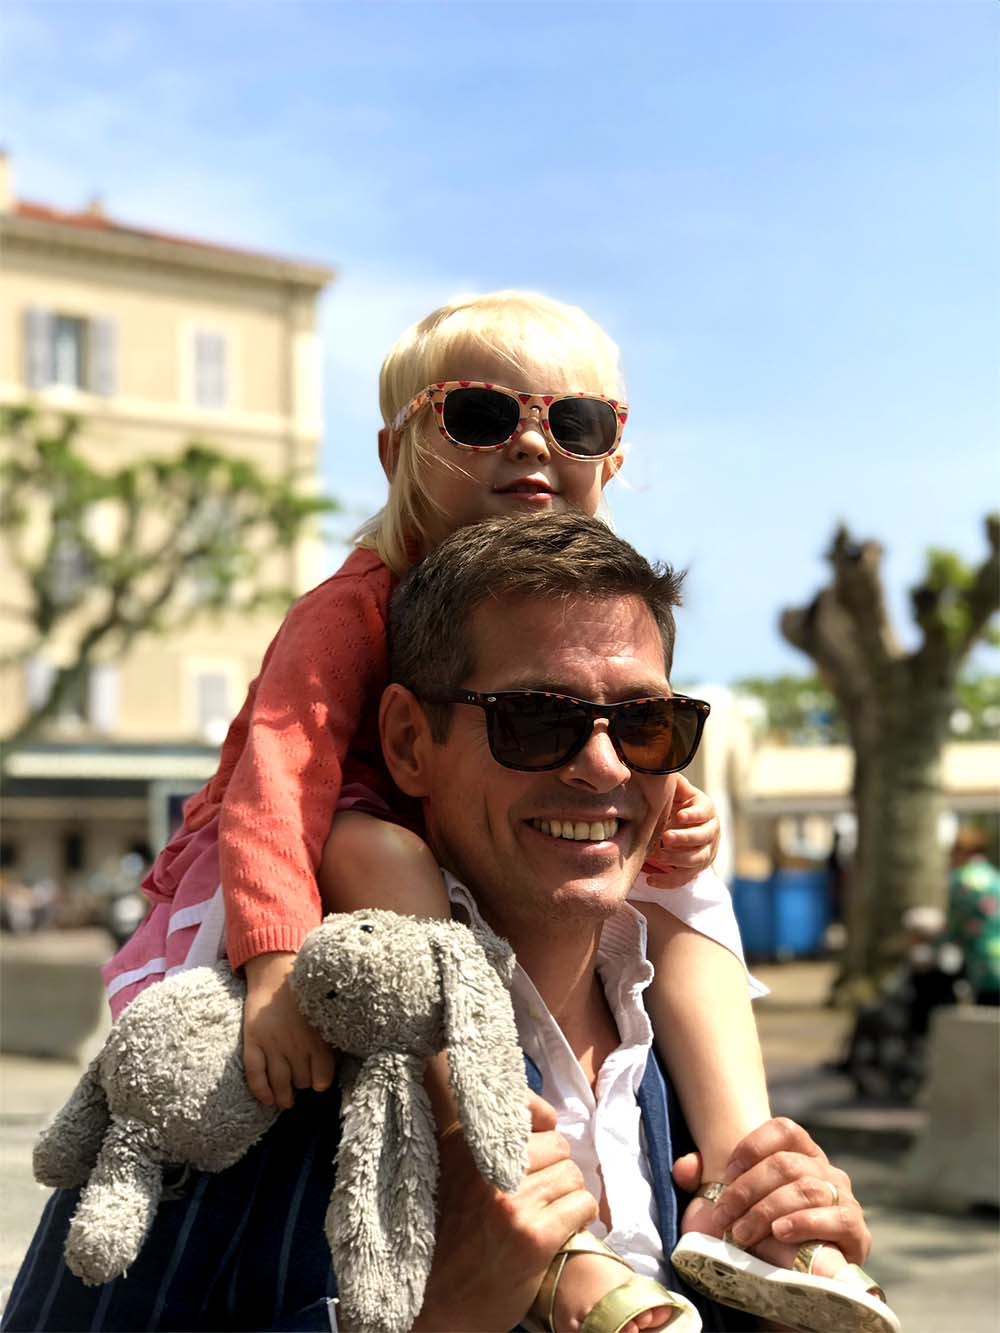 We didn't bring Rosie's stroller on this trip, so she spent a bit of time on Justin's shoulders when the walking became too tiring.